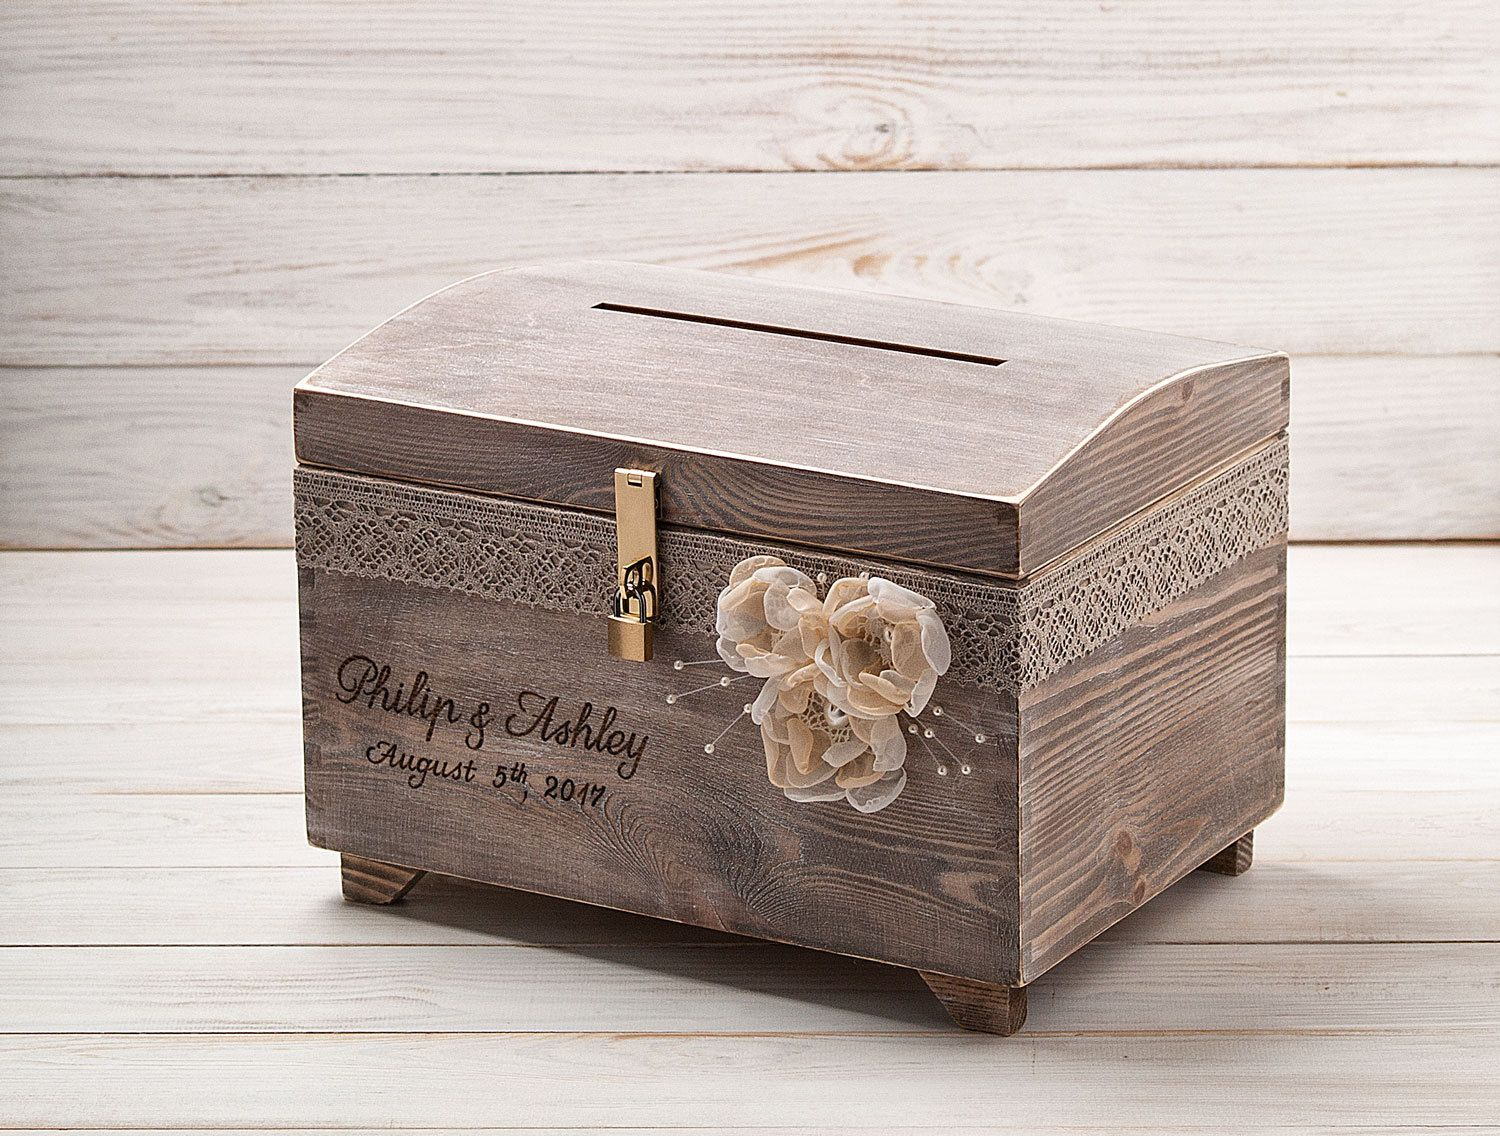 Personalized Card Box With Lock And Key Wedding Card Post Box Etsy Money Box Wedding Card Box Wedding Diy Card Box Wedding